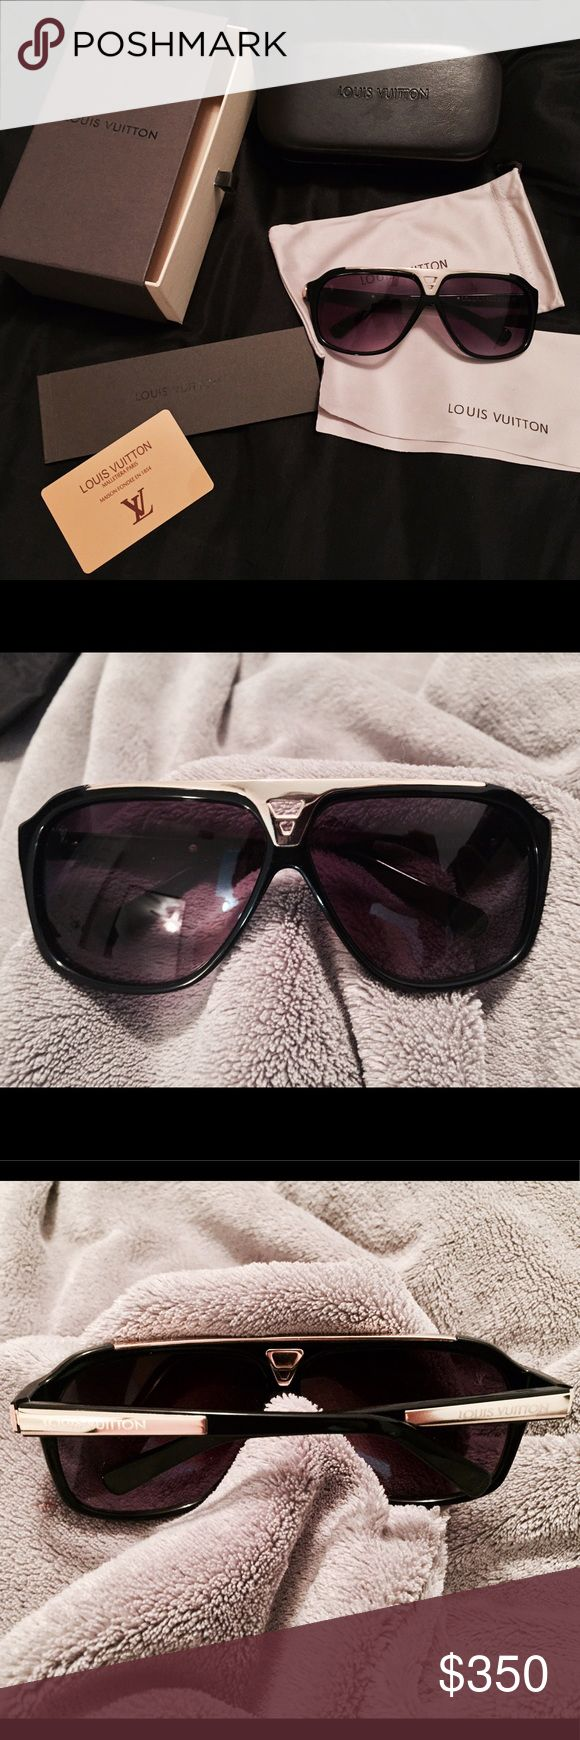 Louis Vuitton Evidence Sunglasses Like new, hardly worn Evidence sunglasses. Originally sold as Men's but I love how it looked on me. Comes with everything in the picture. Box, cases, dust bag, cleaning cloth, booklet, and card. Beautiful piece!! Louis Vuitton Accessories Sunglasses